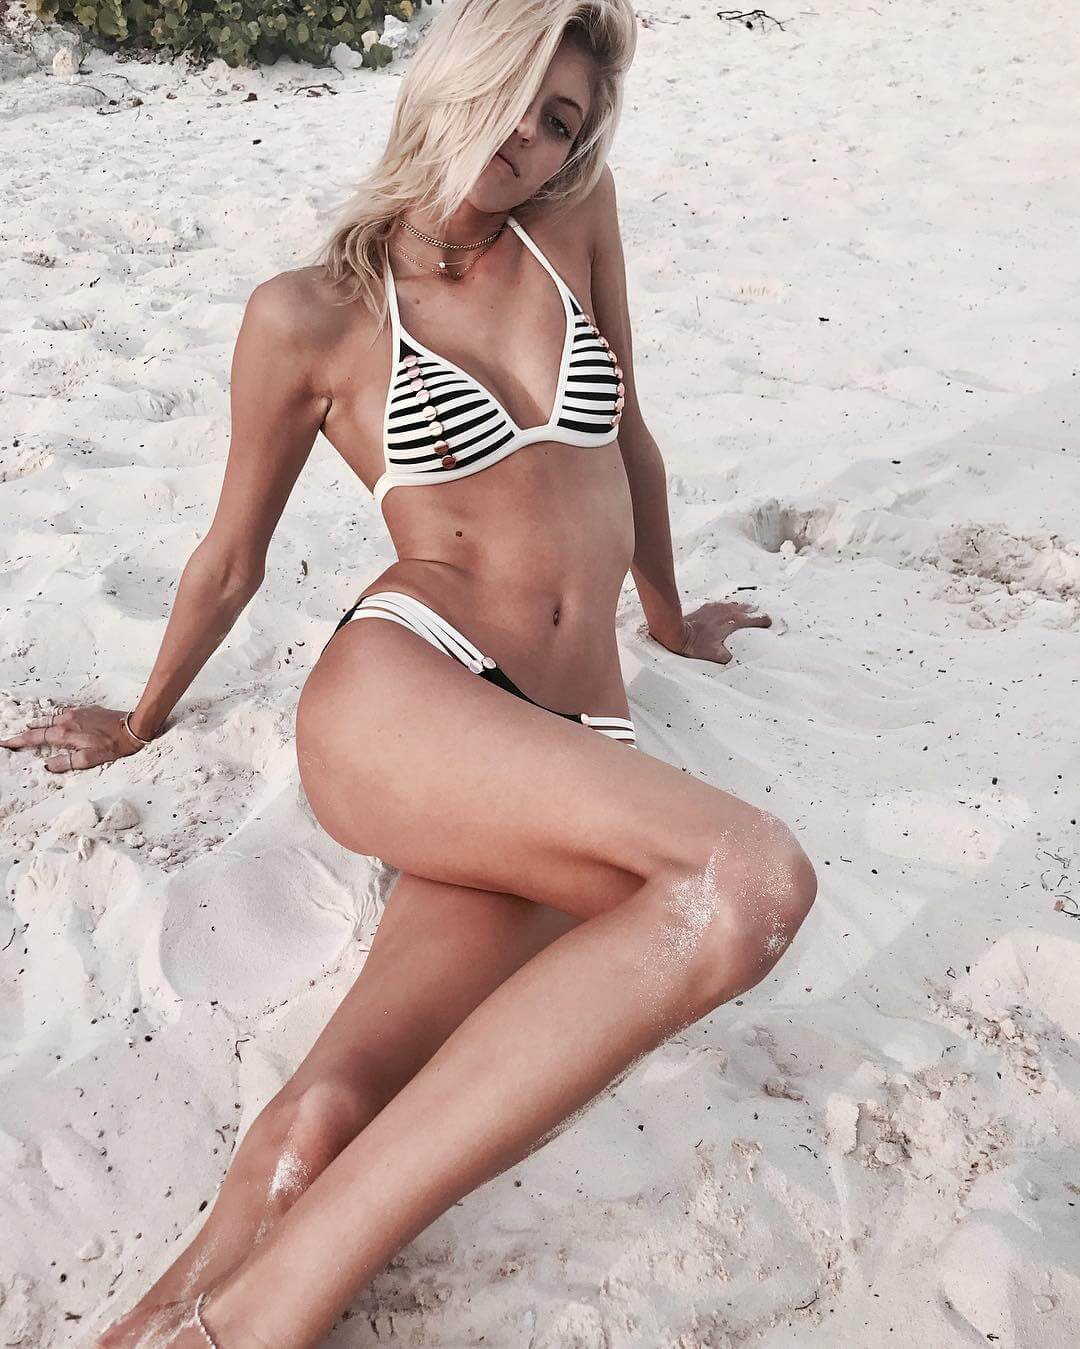 Devon Windsor hot bikini